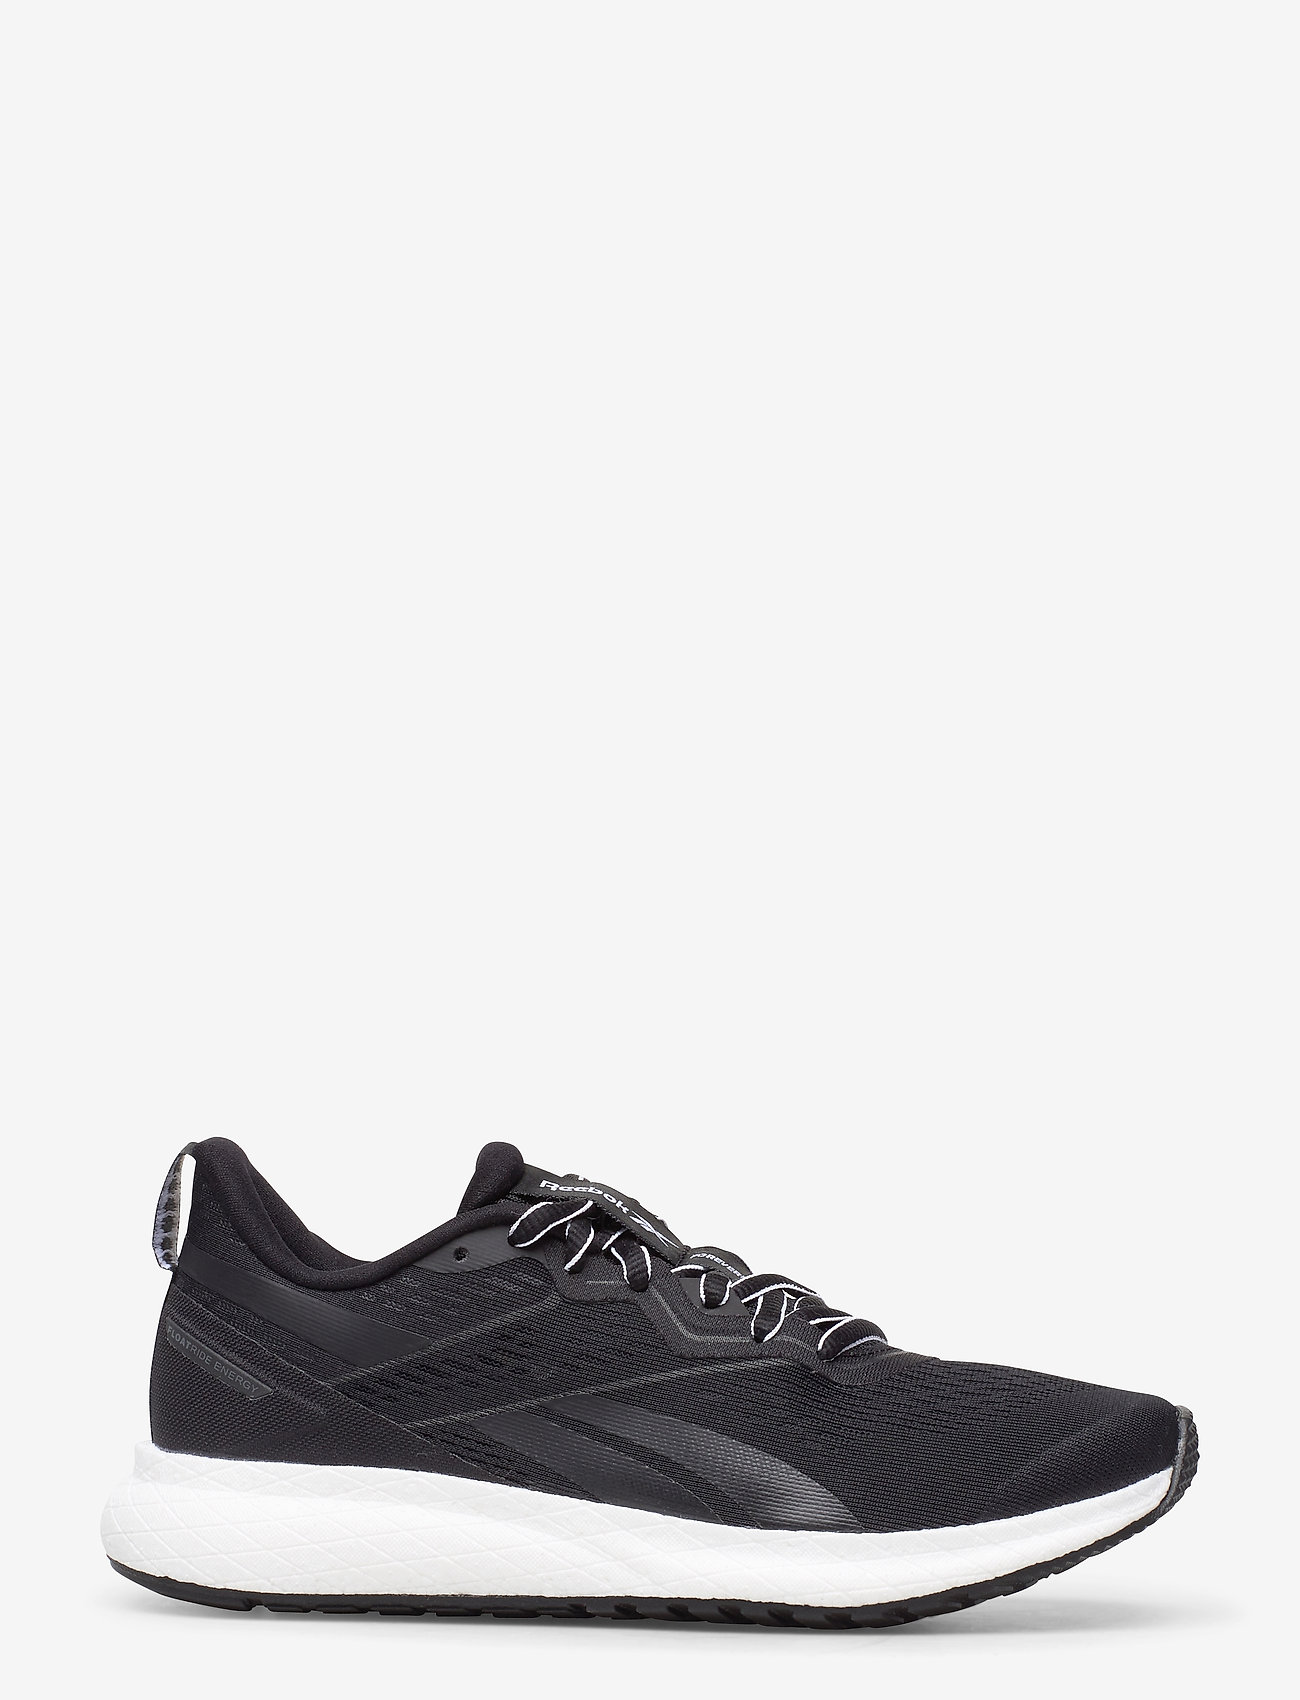 Forever Floatride Energy 2 (Black/black/white) (69.97 €) - Reebok Performance rU01X